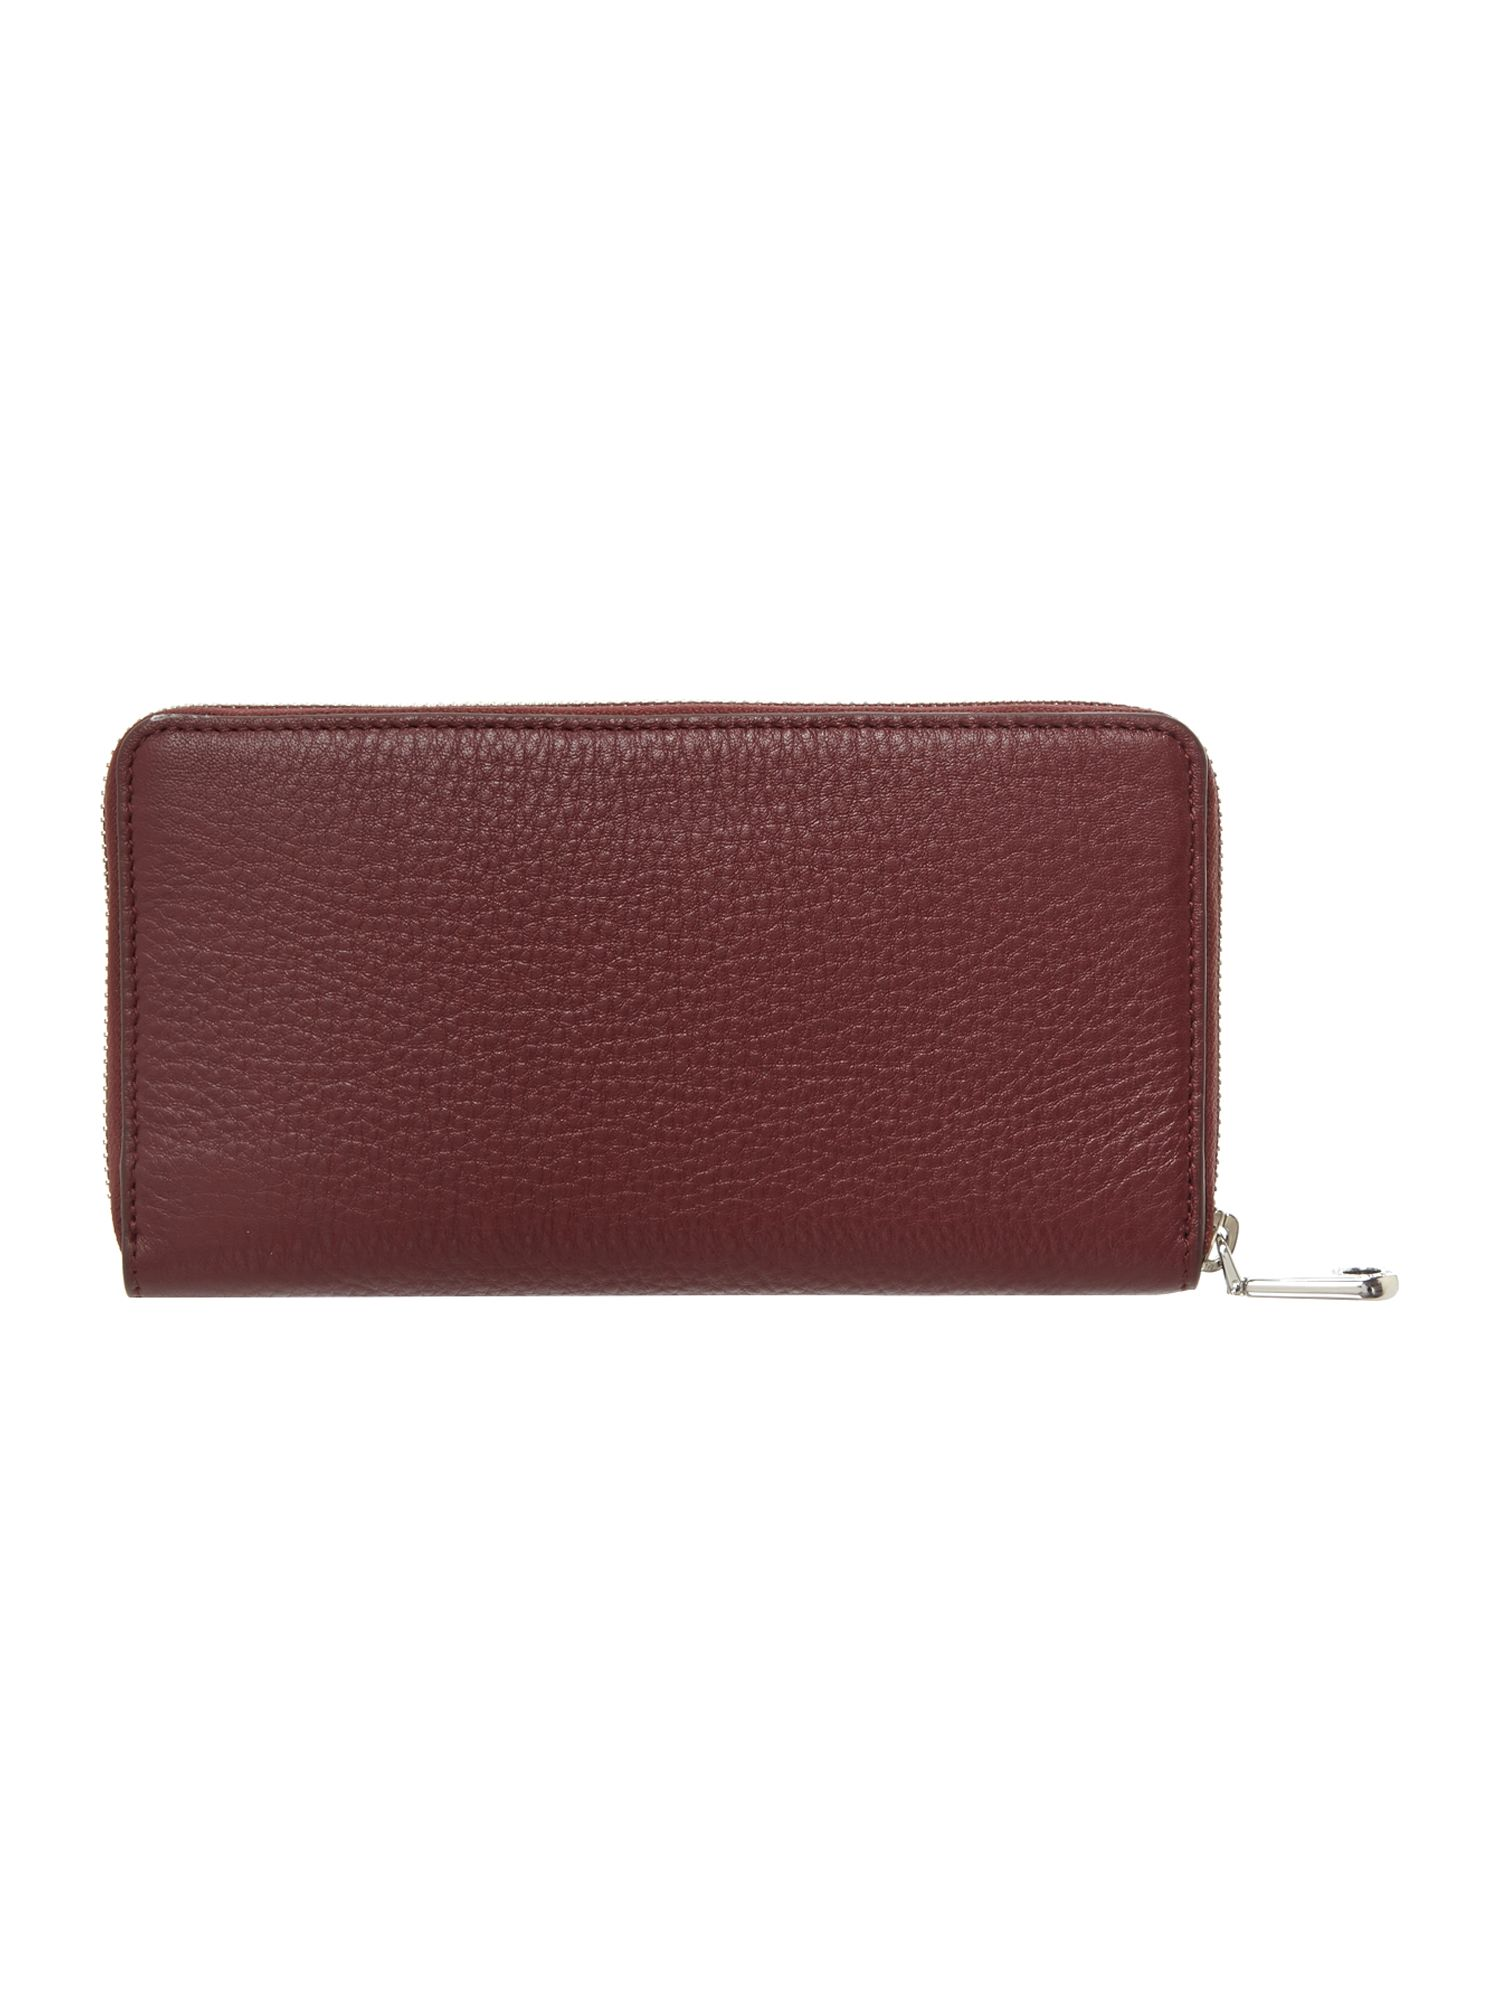 Soft leather red large zip around purse